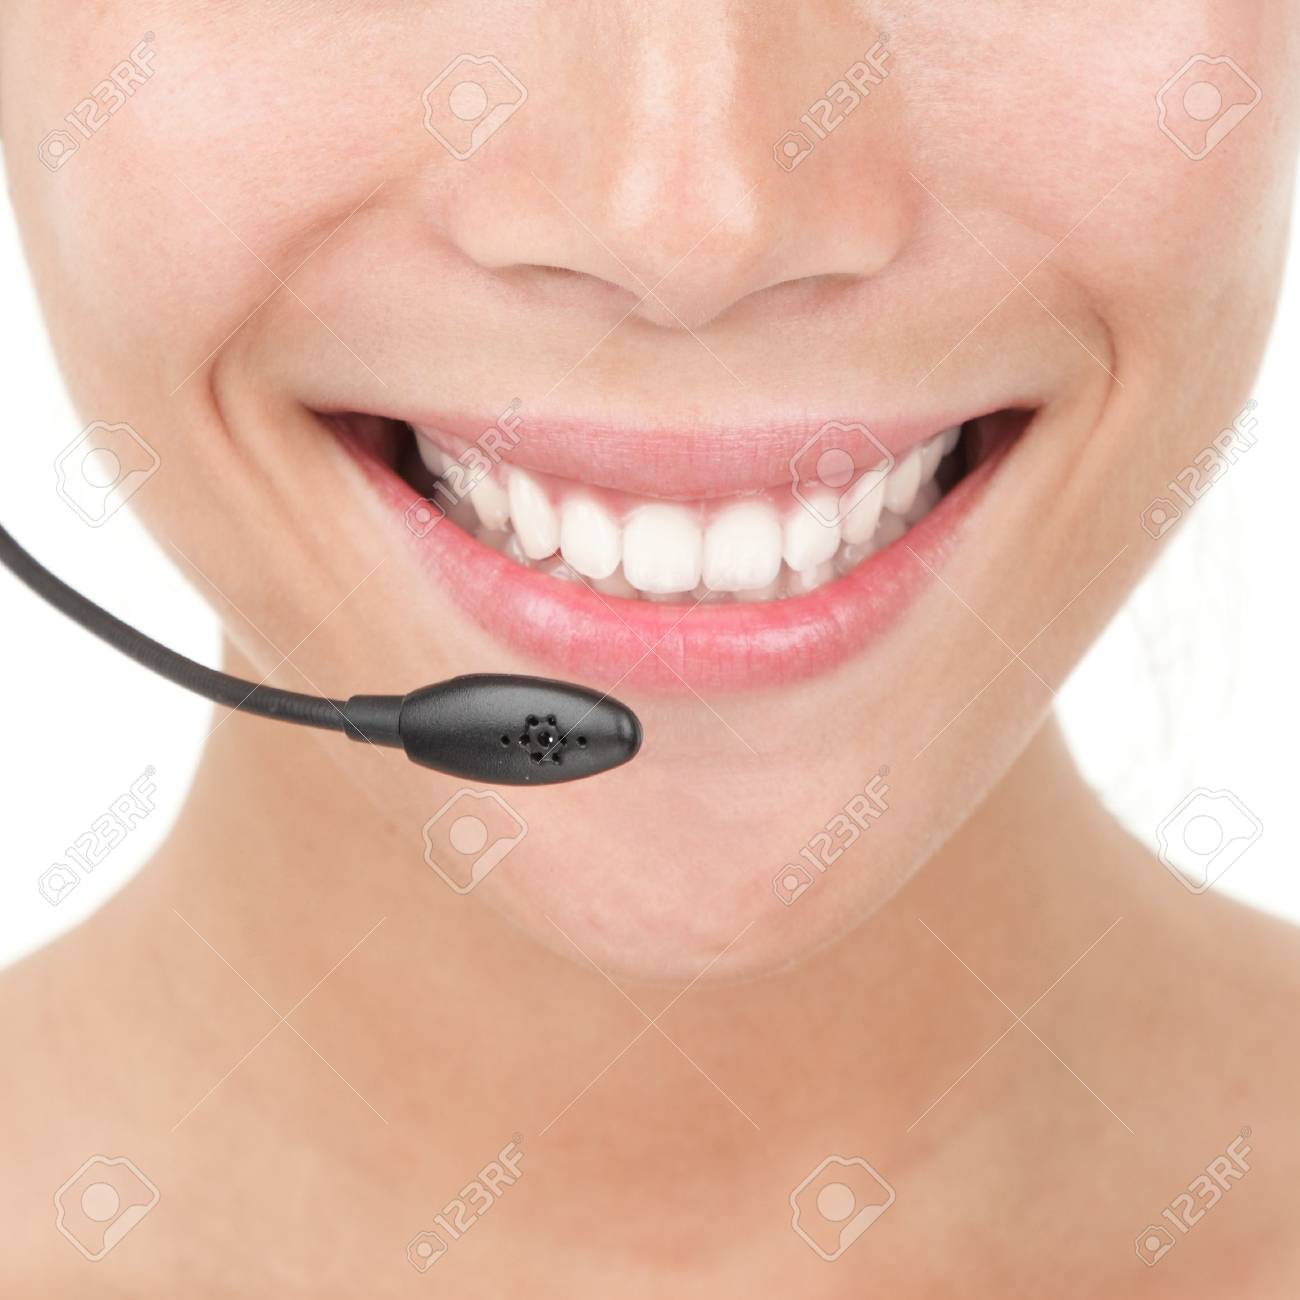 Closeup of beautiful woman with headset. Stock Photo - 6221268